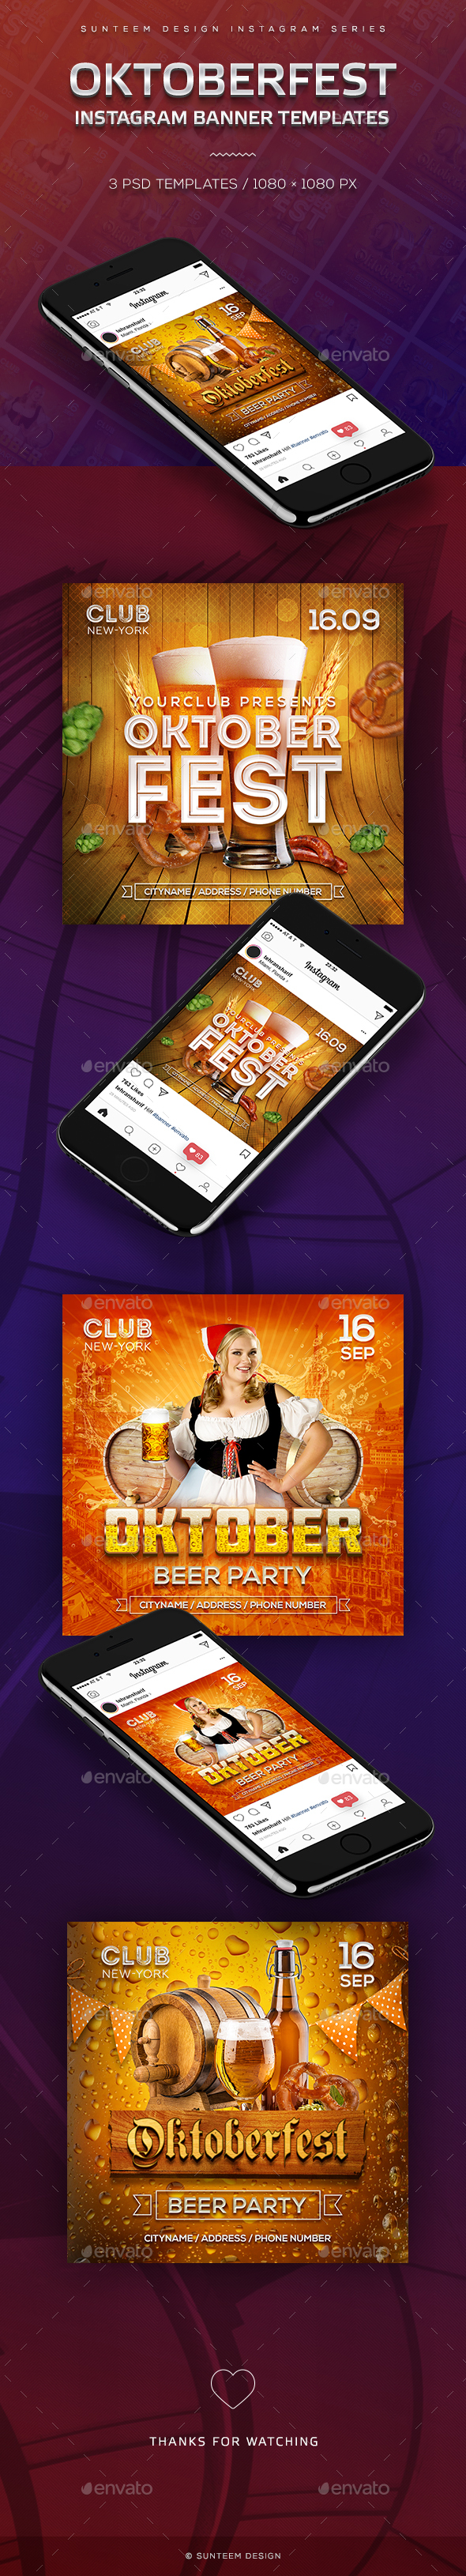 Oktoberfest Beer Party 3 Instagram Banner Templates - Banners & Ads Web Elements